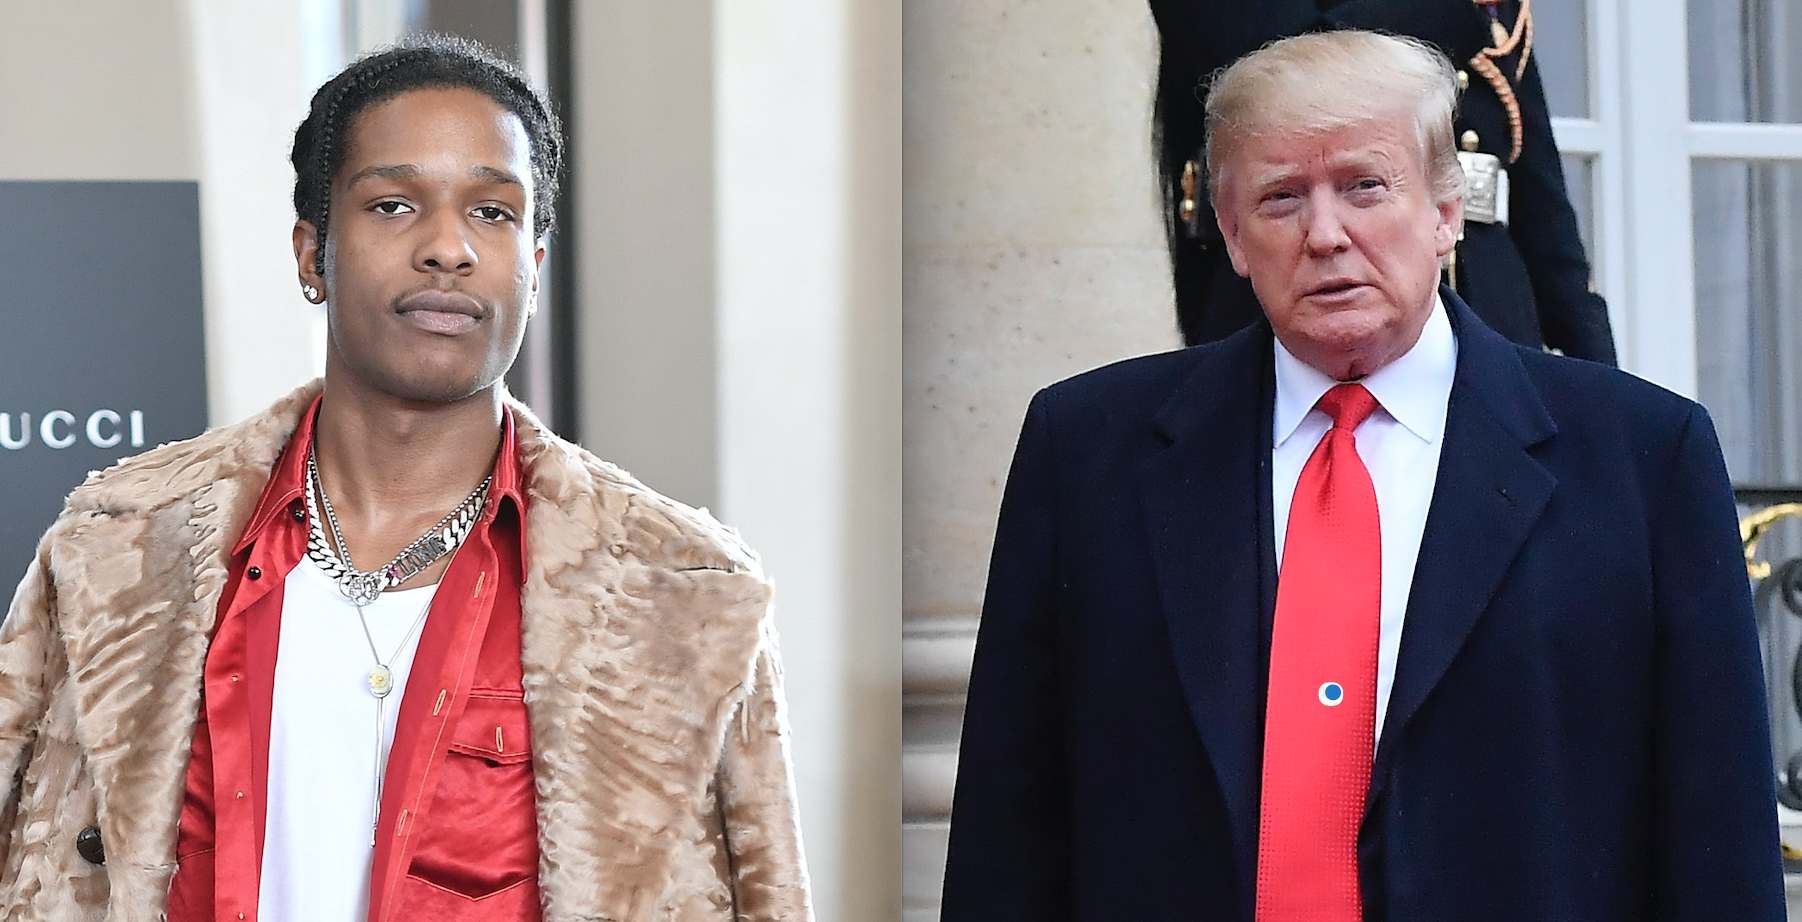 Trump Says He Called Sweden's Prime Minister to 'Personally Vouch' for A$AP Rocky